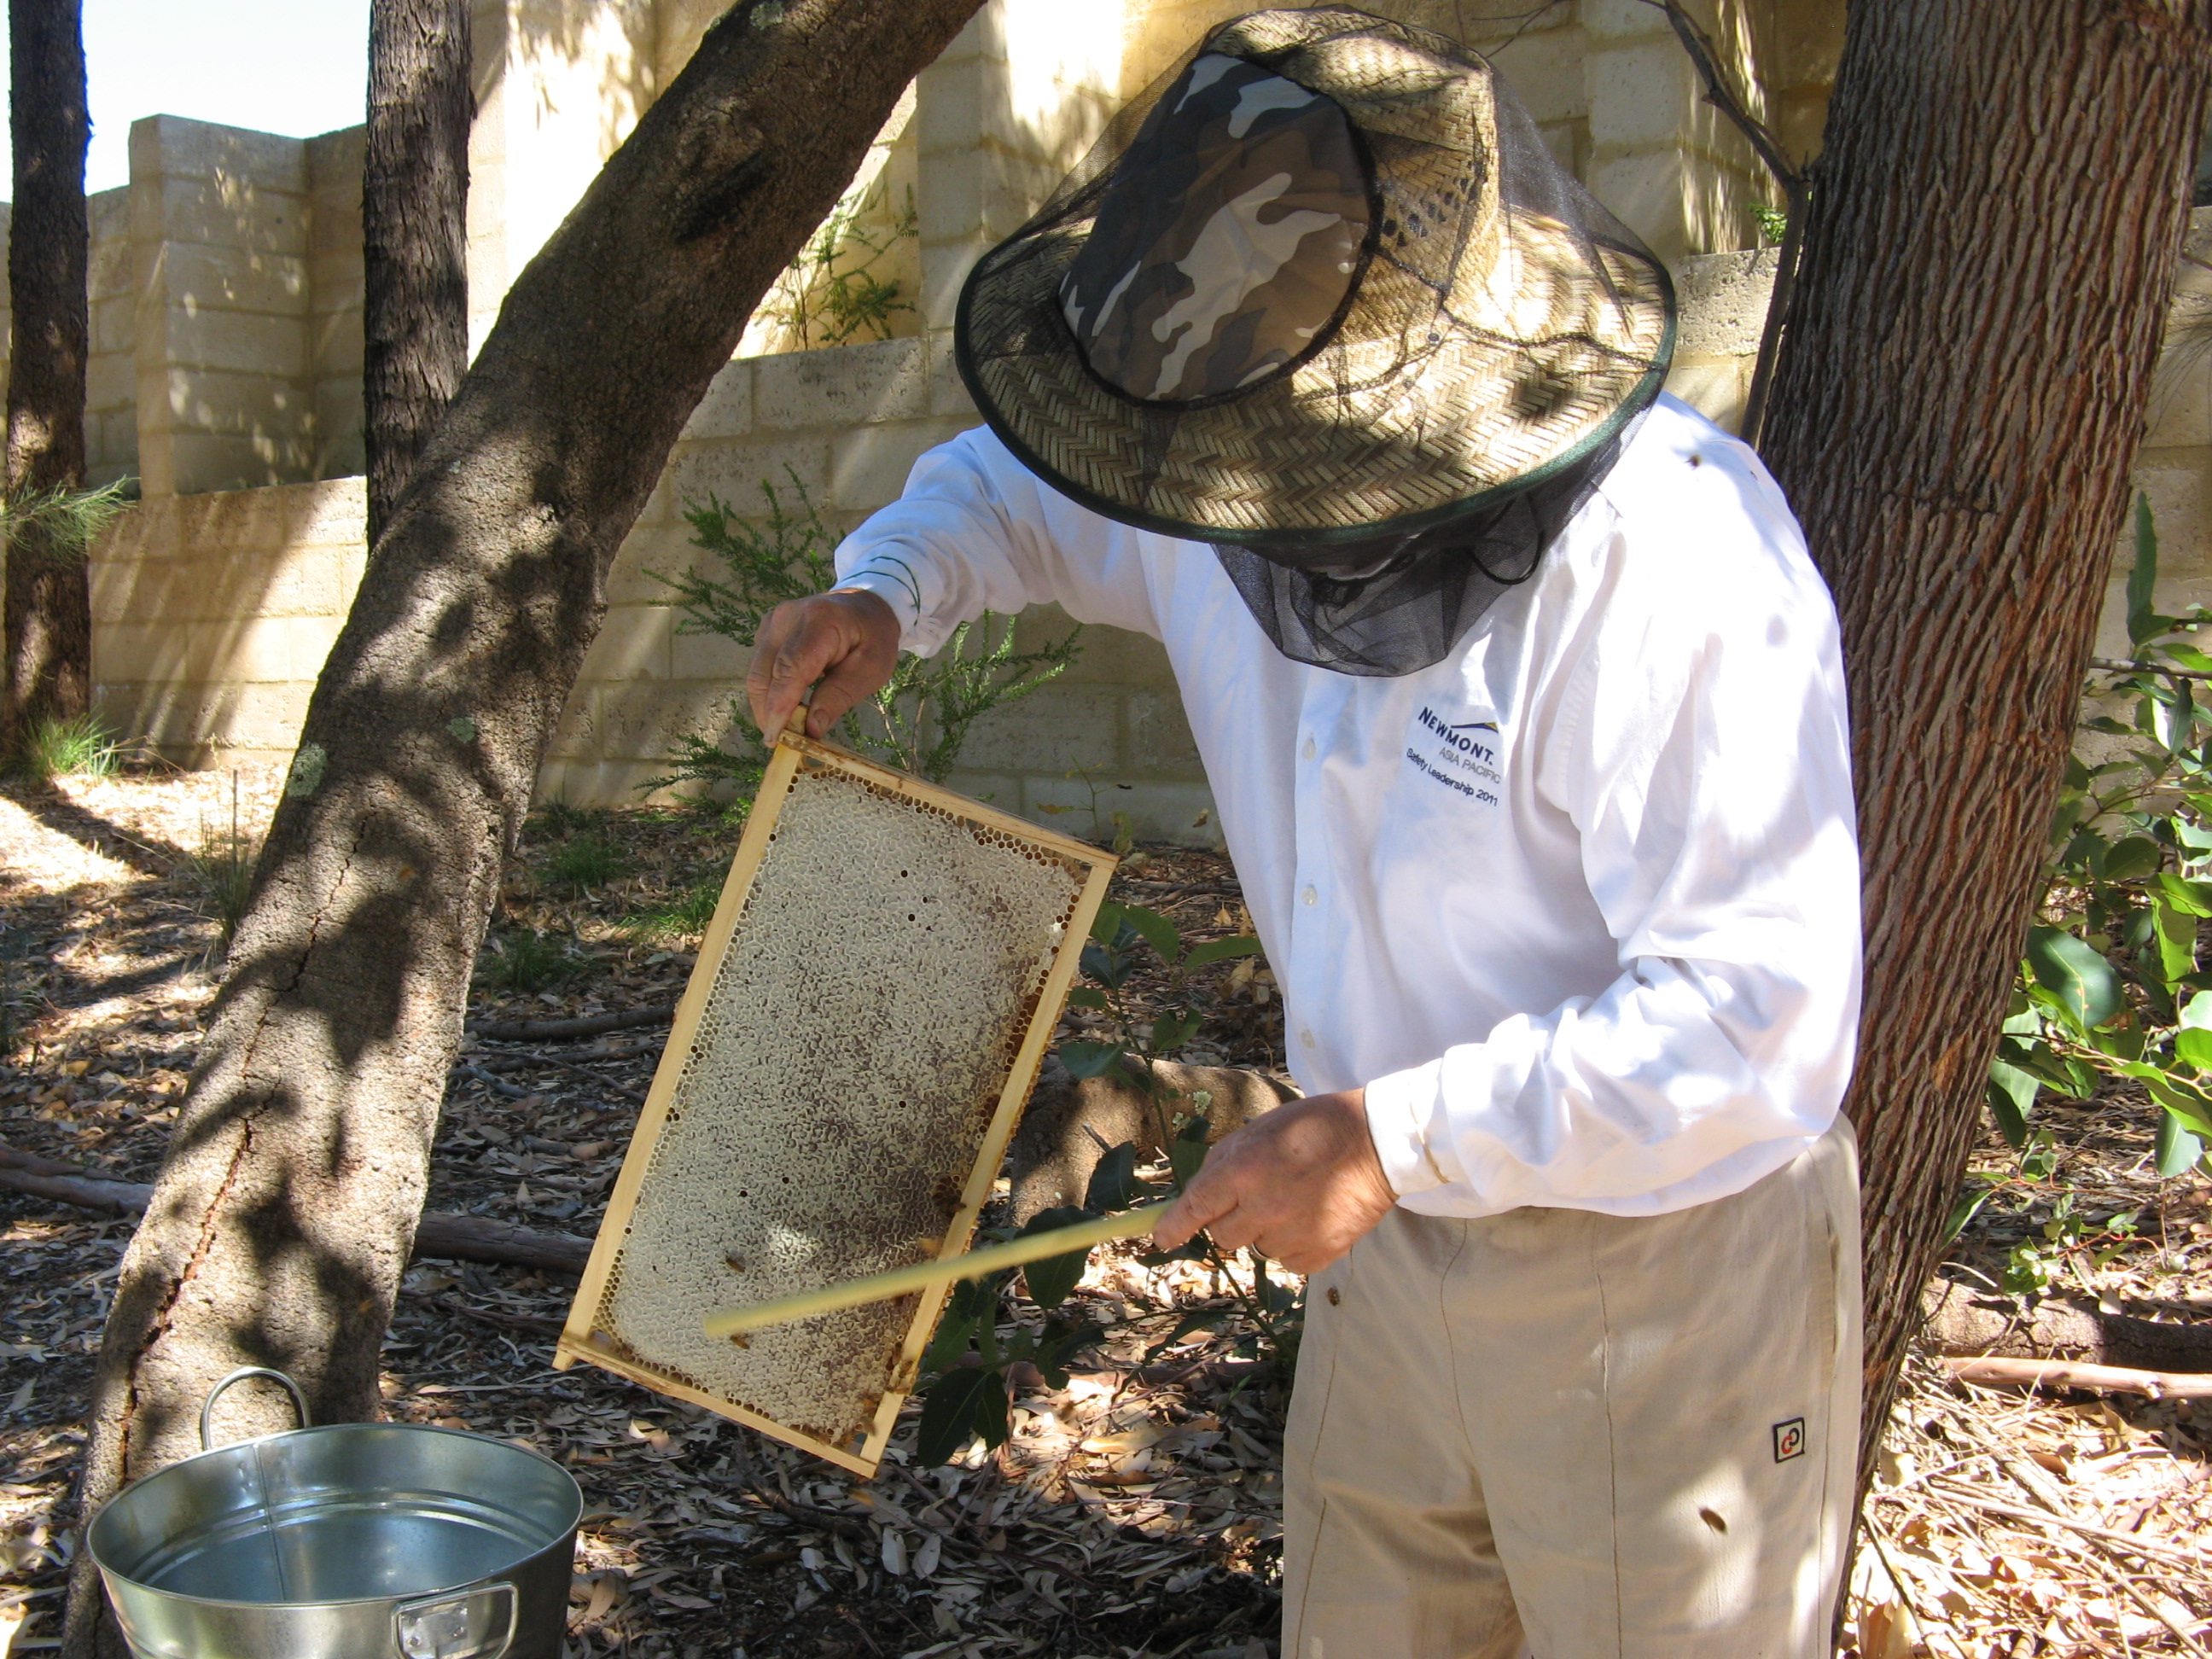 Brushing the bees off a frame of capped honey